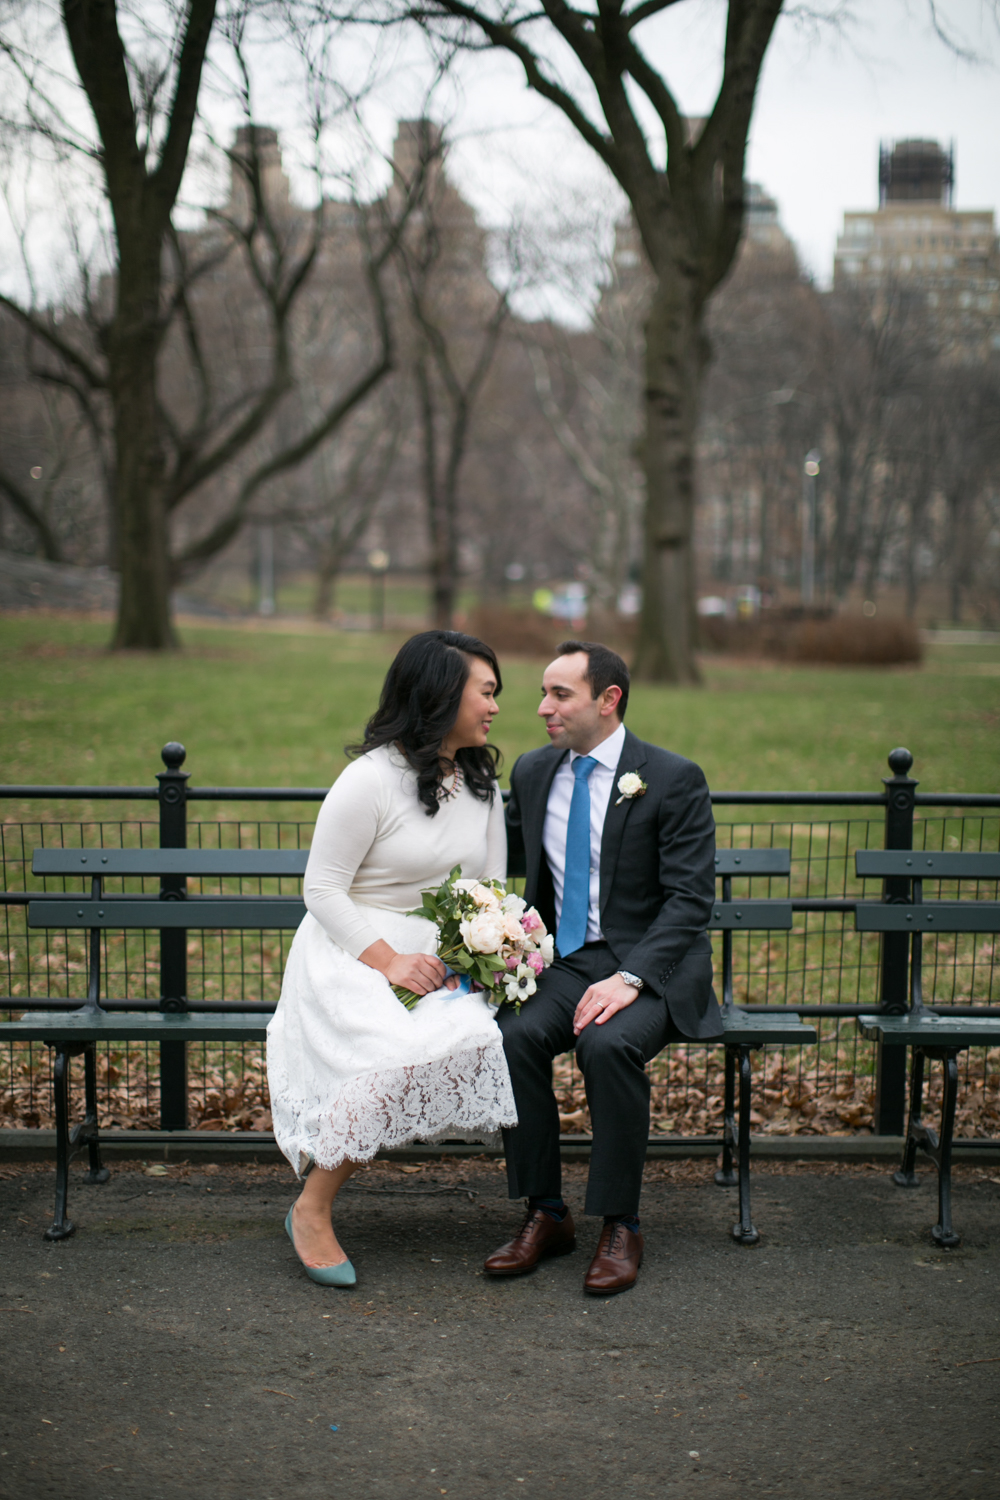 Bride and groom on park bench in NYC